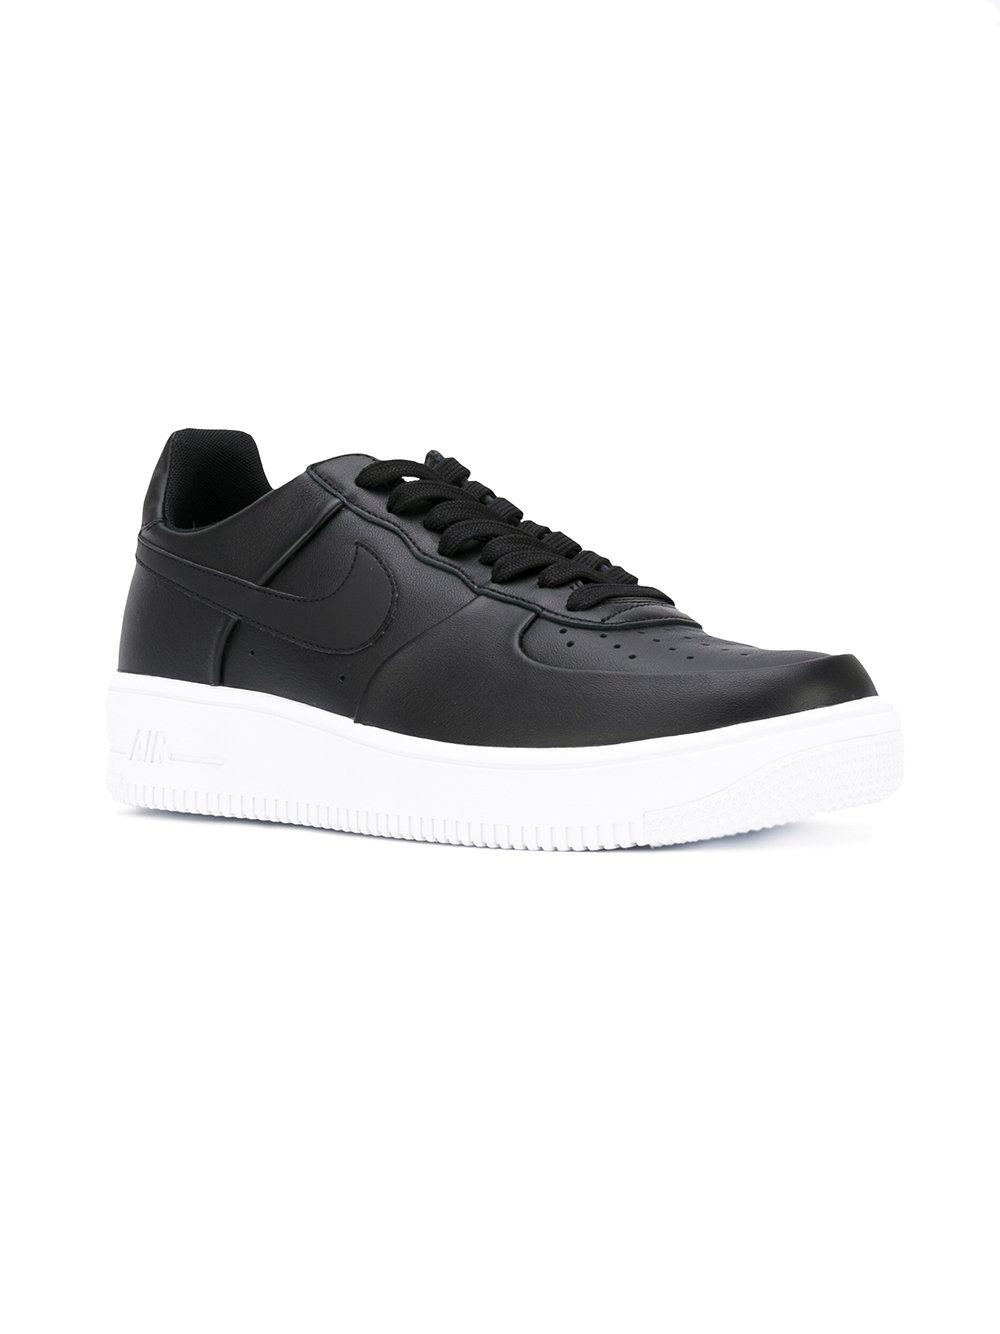 lyst nike air force 1 ultraforce scarpe in nero per gli uomini.